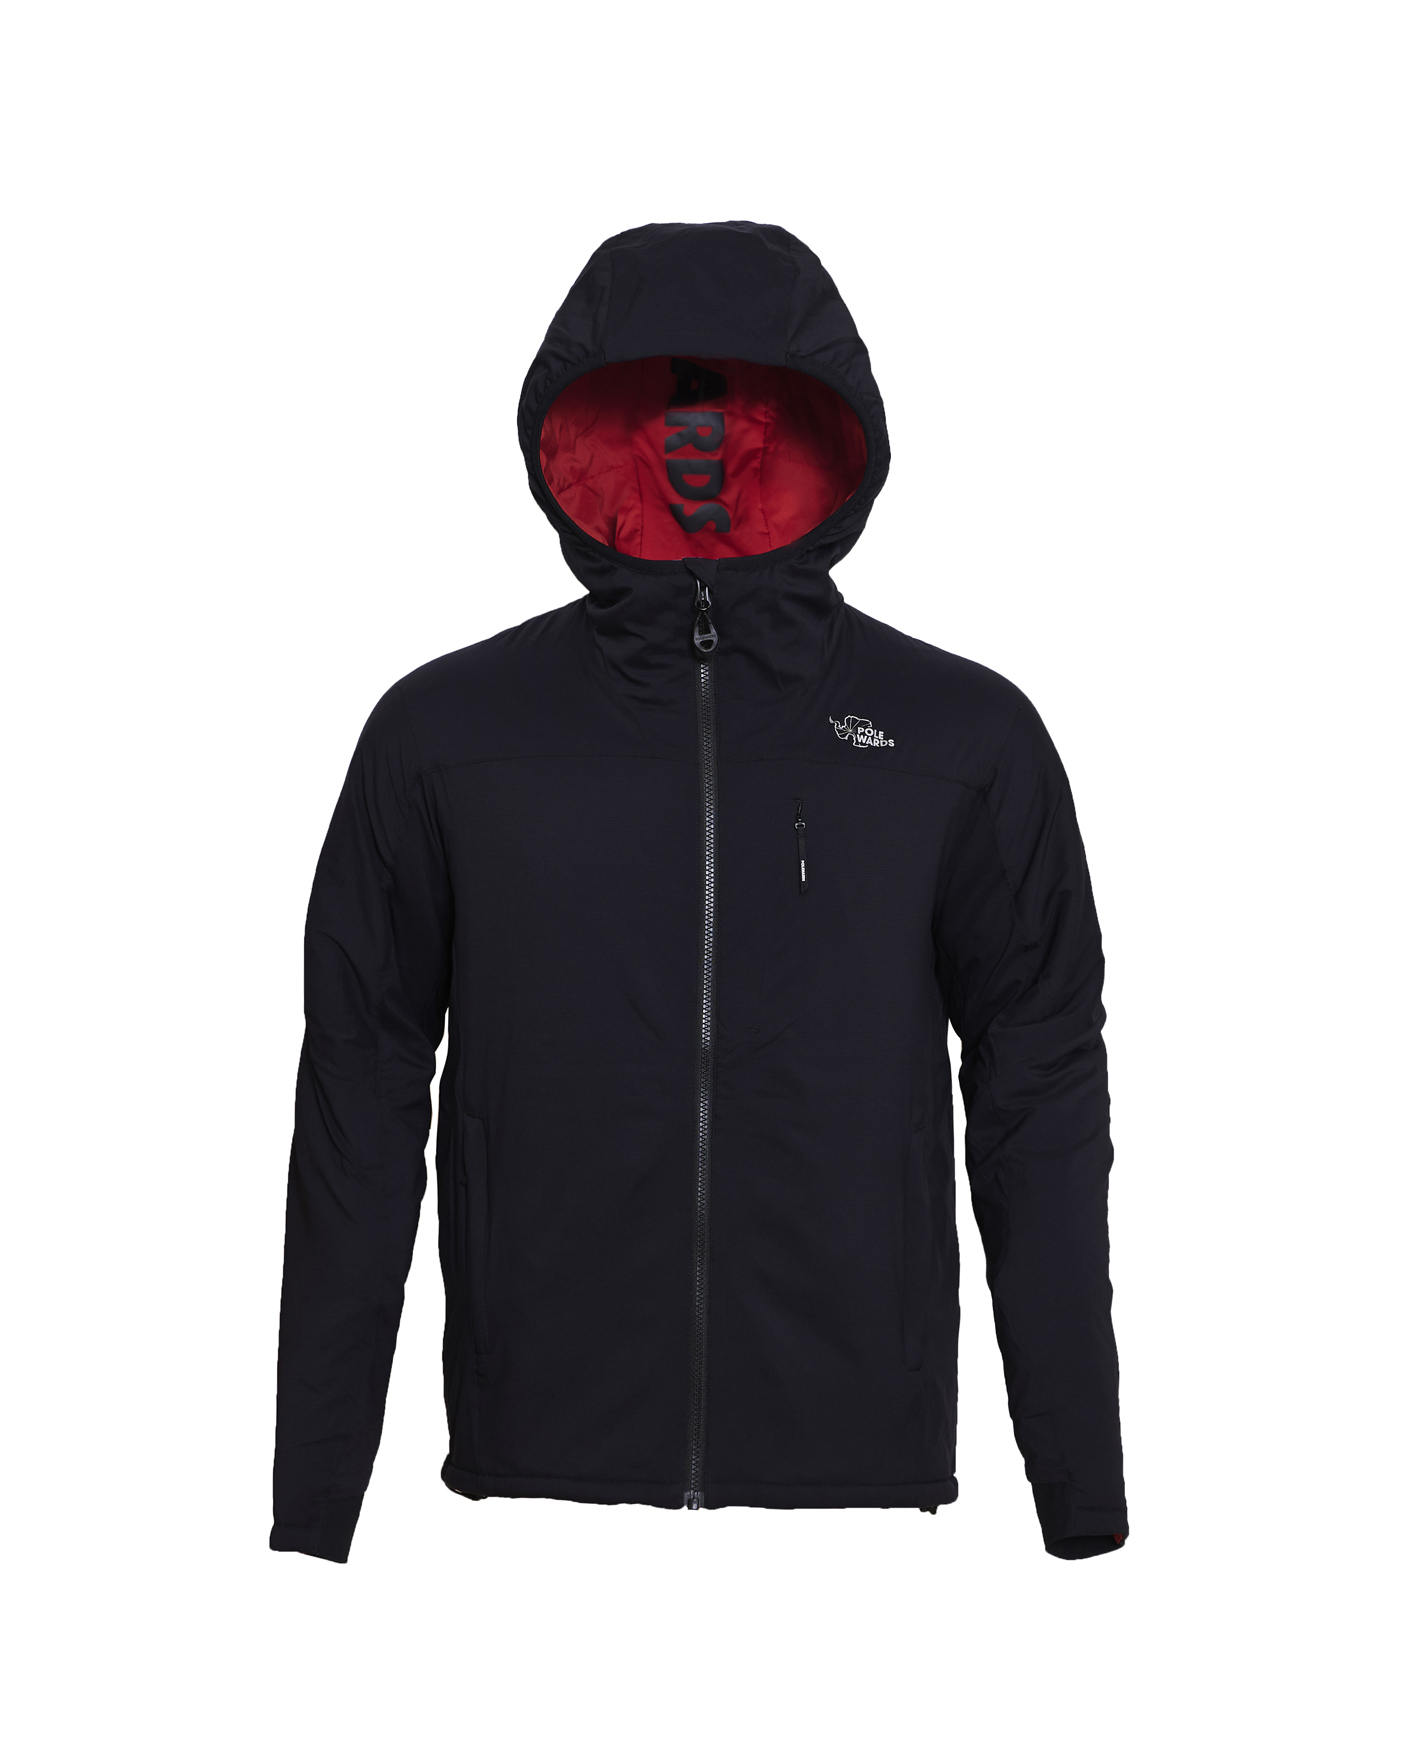 EXCORE Redpoint Hoody